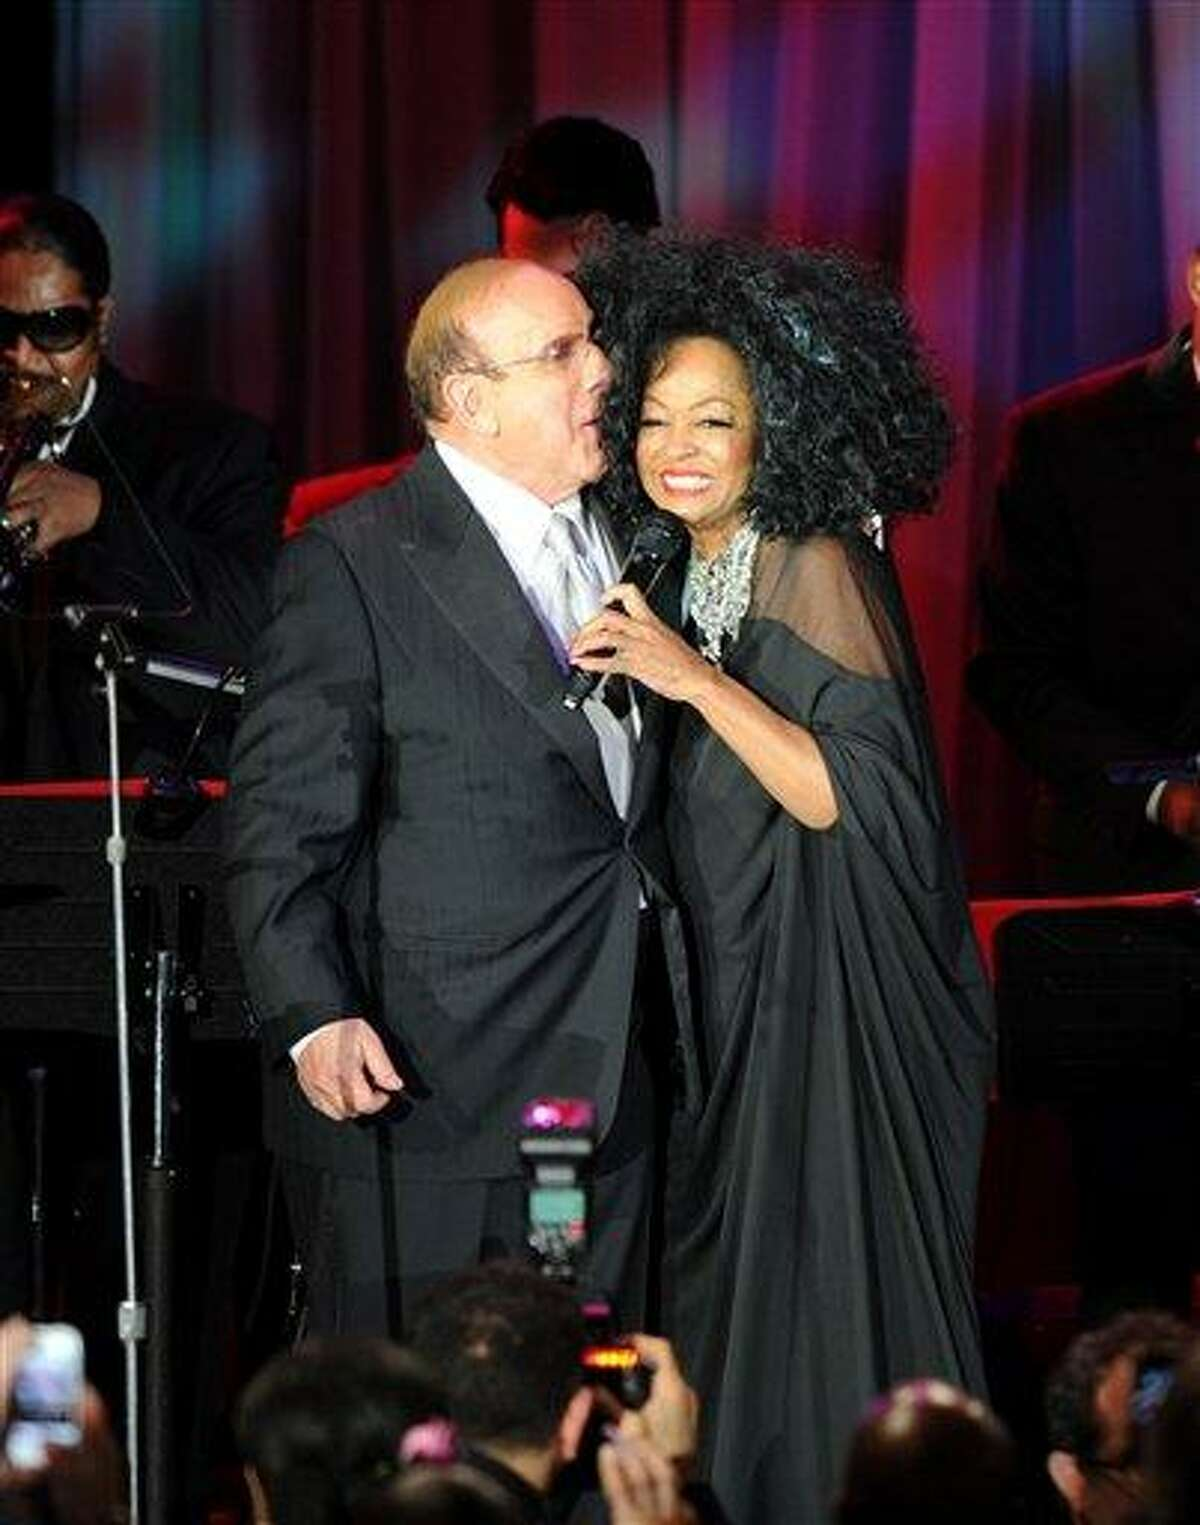 Clive Davis and Diana Ross speak onstage at the Pre-GRAMMY Gala & Salute to Industry Icons with Clive Davis honoring Richard Branson, Saturday in Beverly Hills, Calif. Associated Press